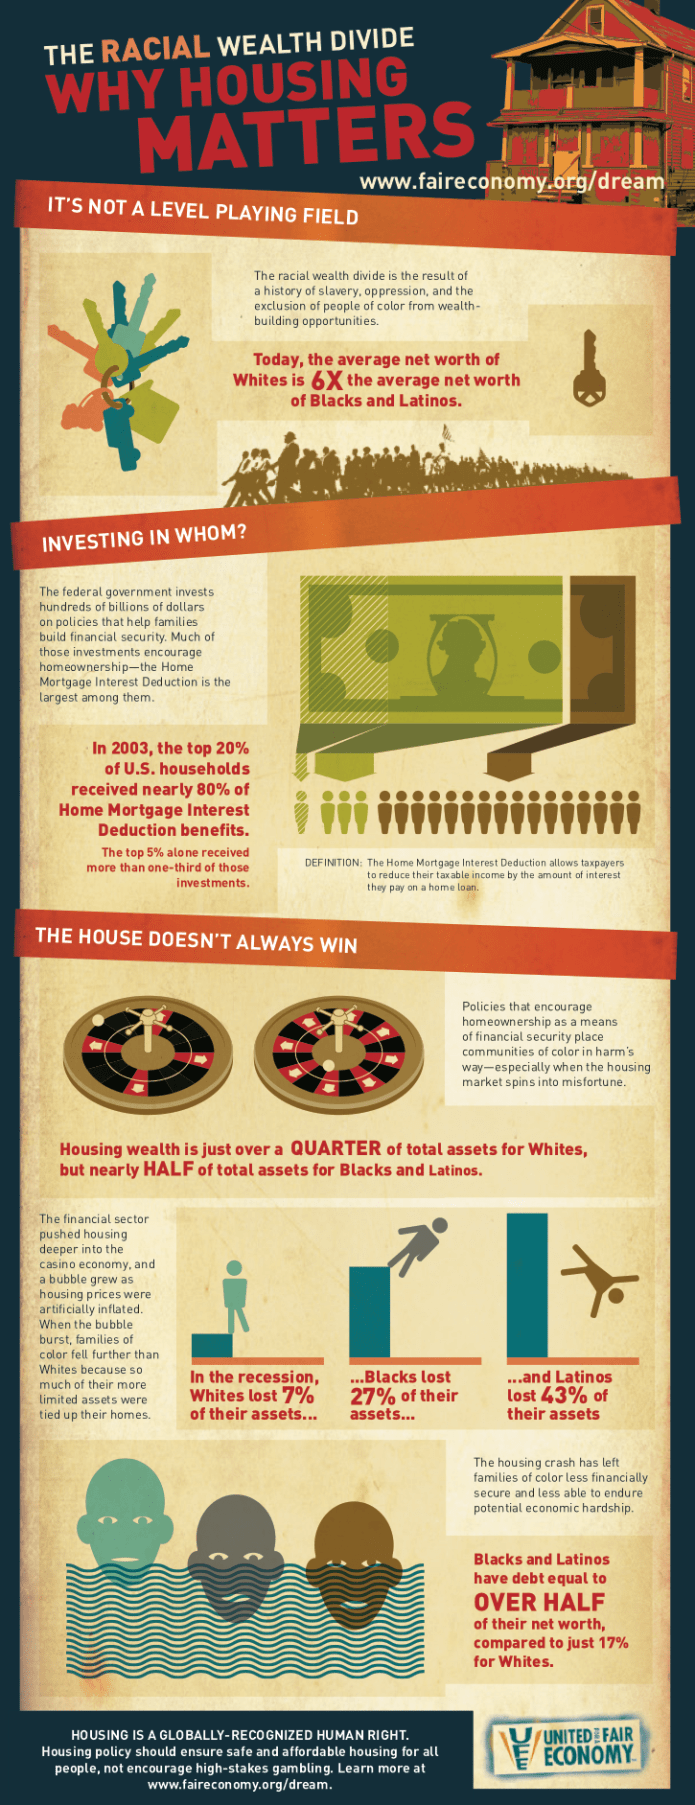 why housing matters infographic